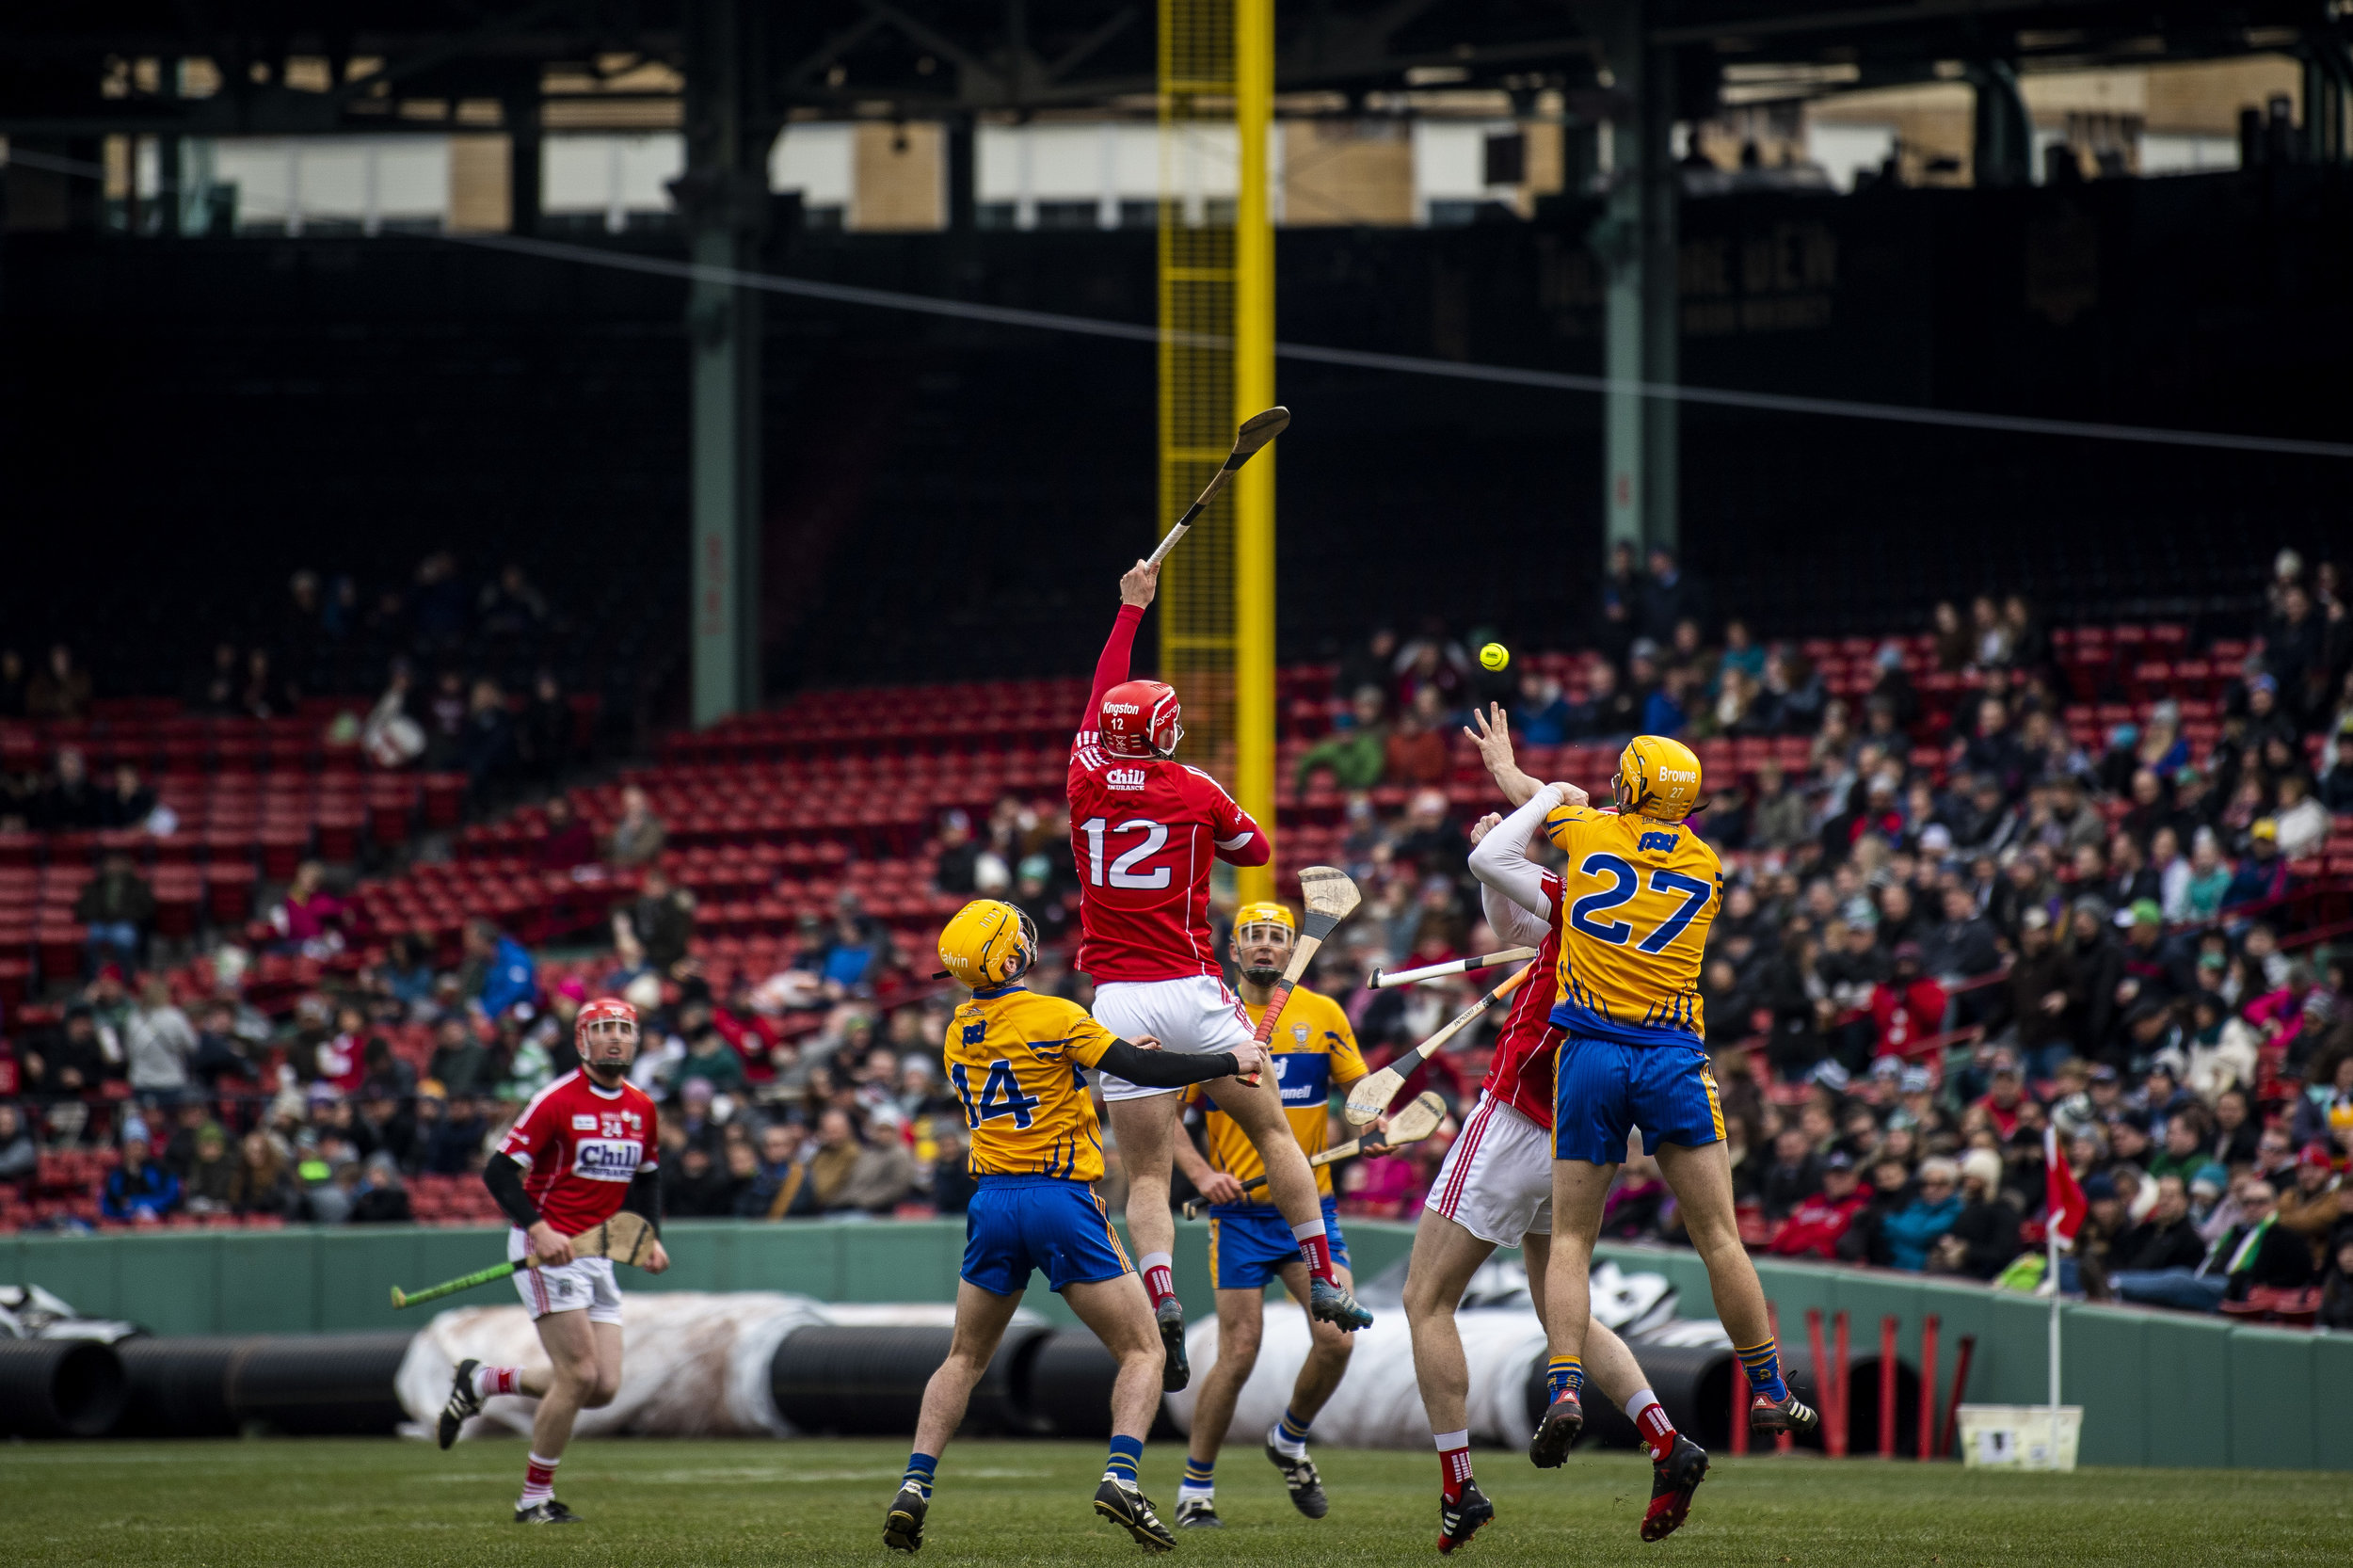 November 18, 2018, Boston, MA: during the Fenway Hurling Classic at Fenway Park in Boston, Massachusetts on Sunday, November 18, 2018. (Photo by Matthew Thomas/Boston Red Sox)